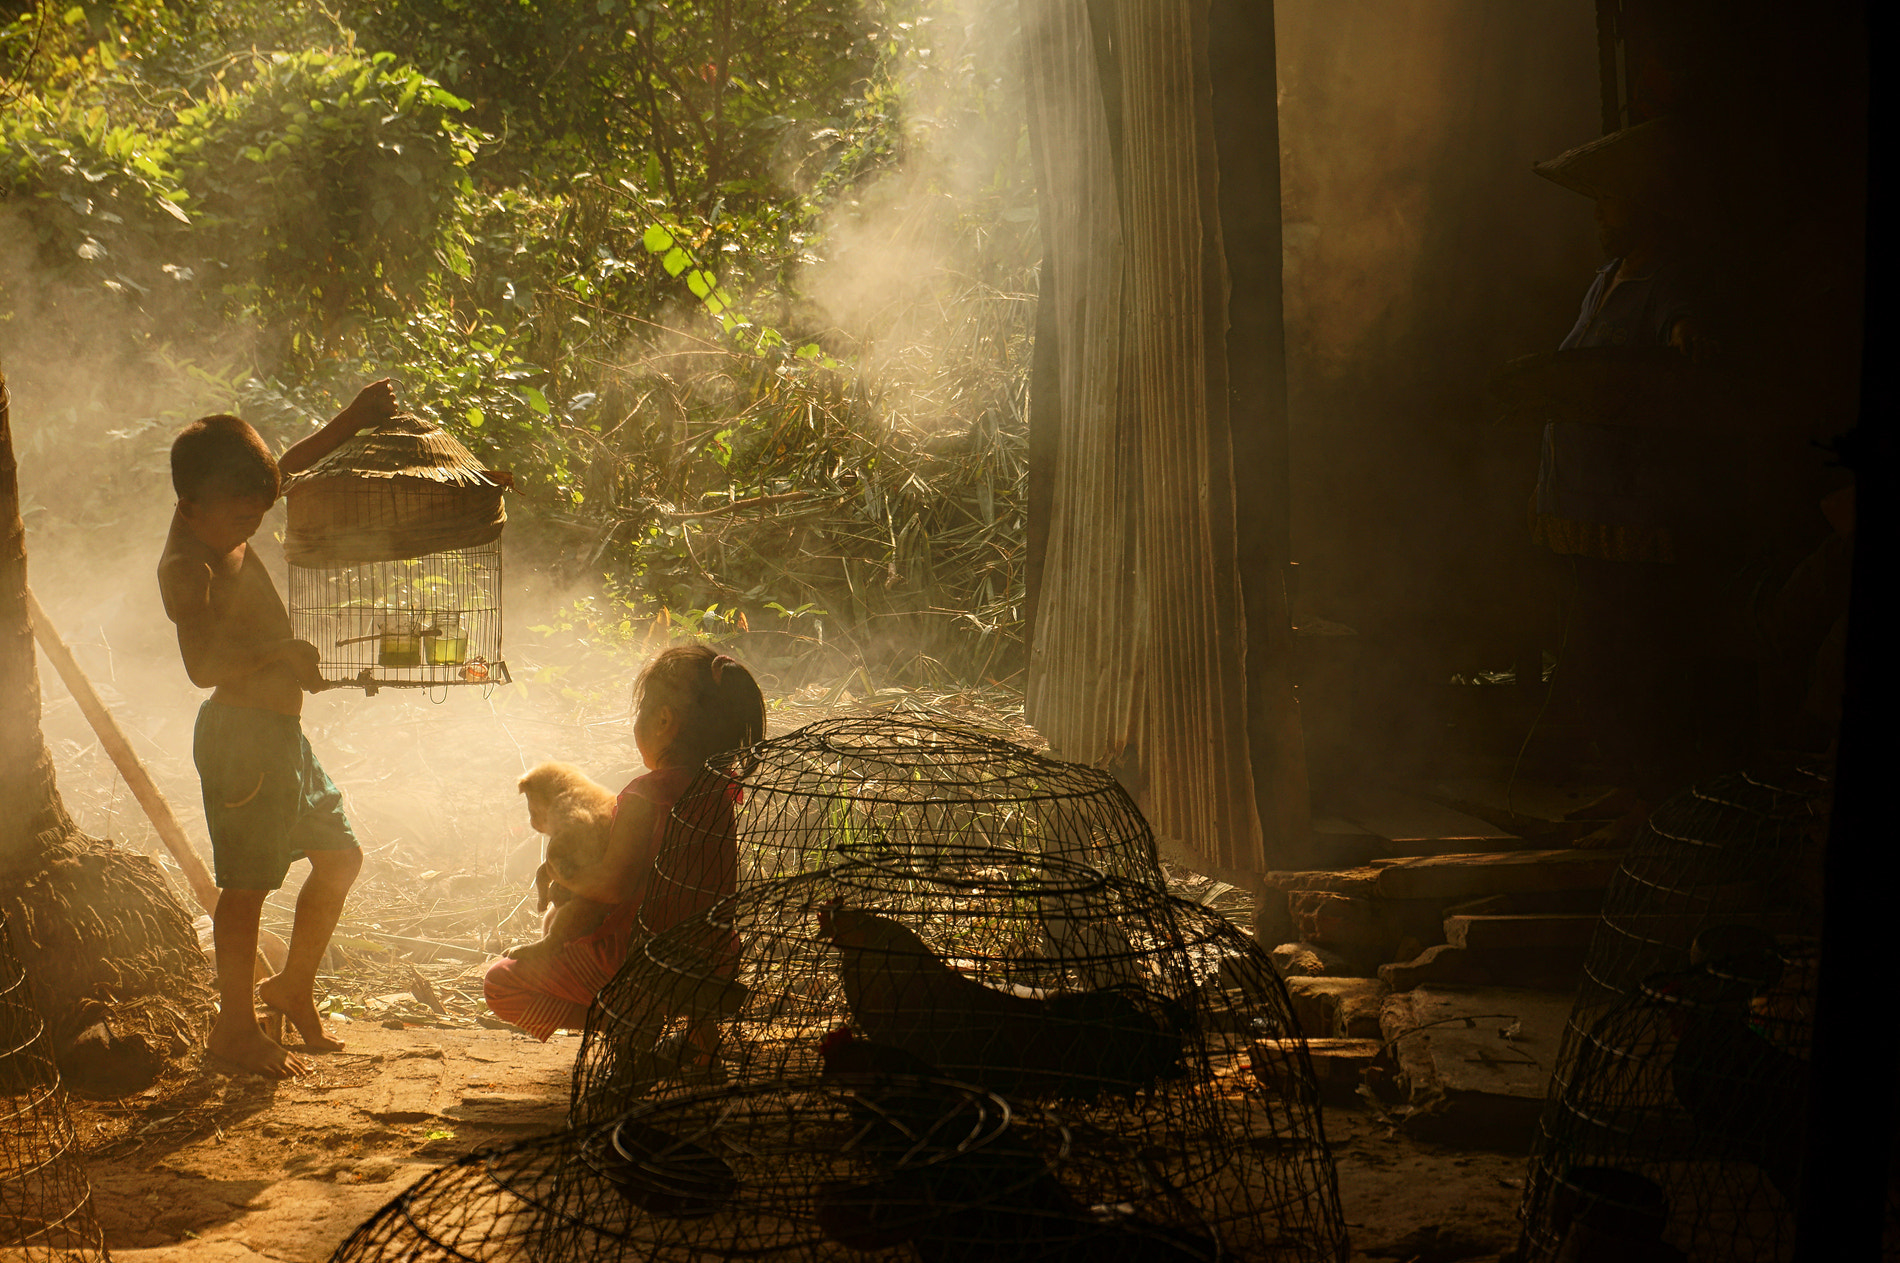 Photograph Countryside kids by Pham Ty on 500px